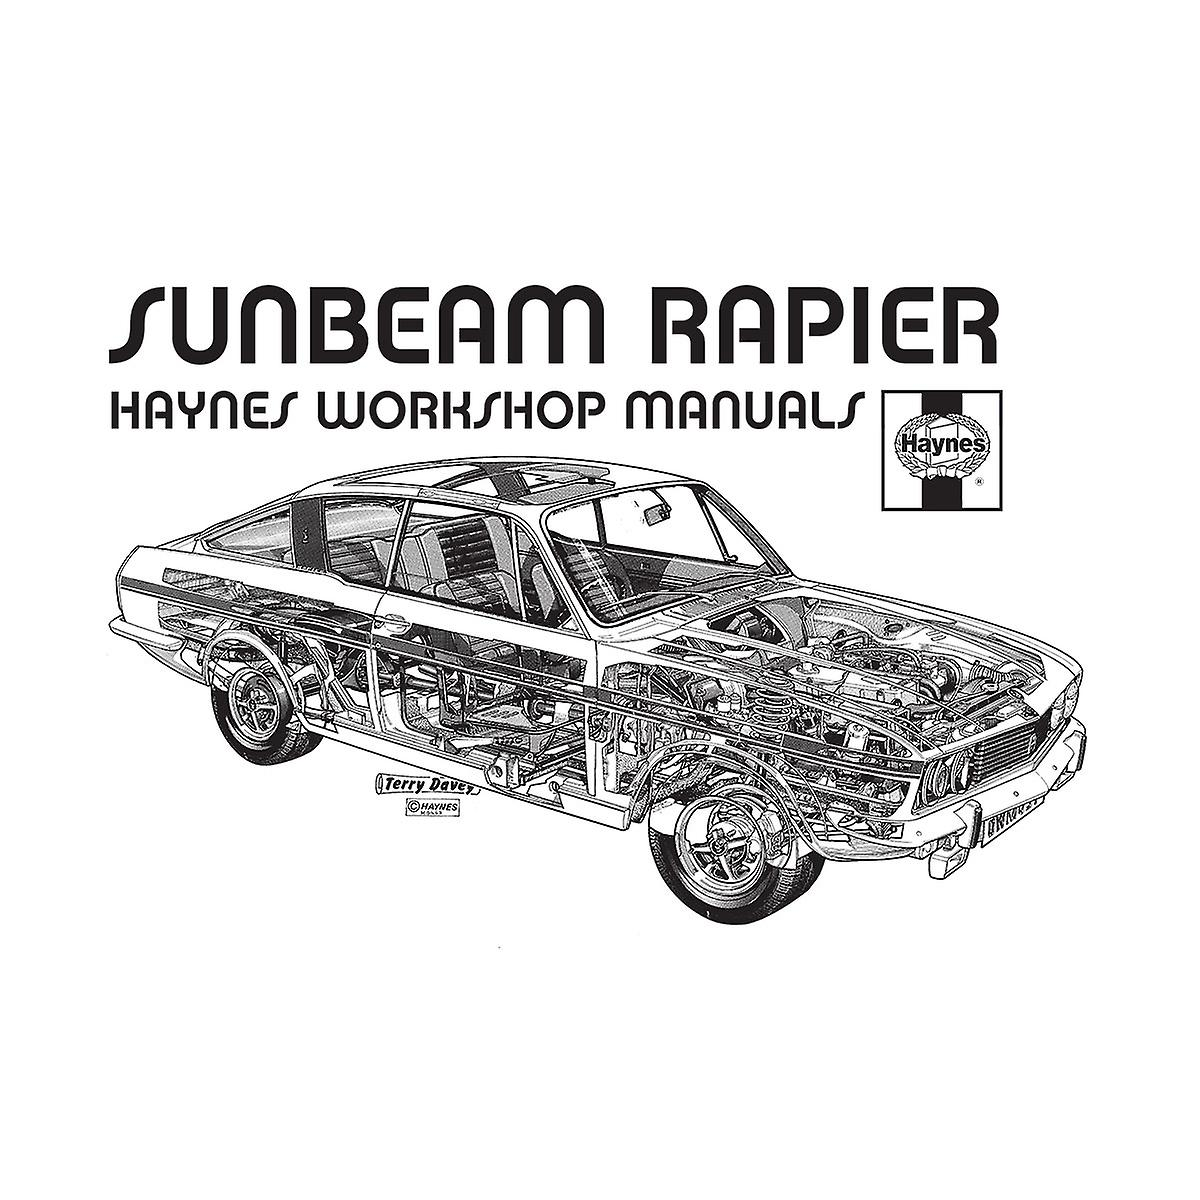 Haynes Owners Workshop Manual 0012 Sunbeam Rapier Black